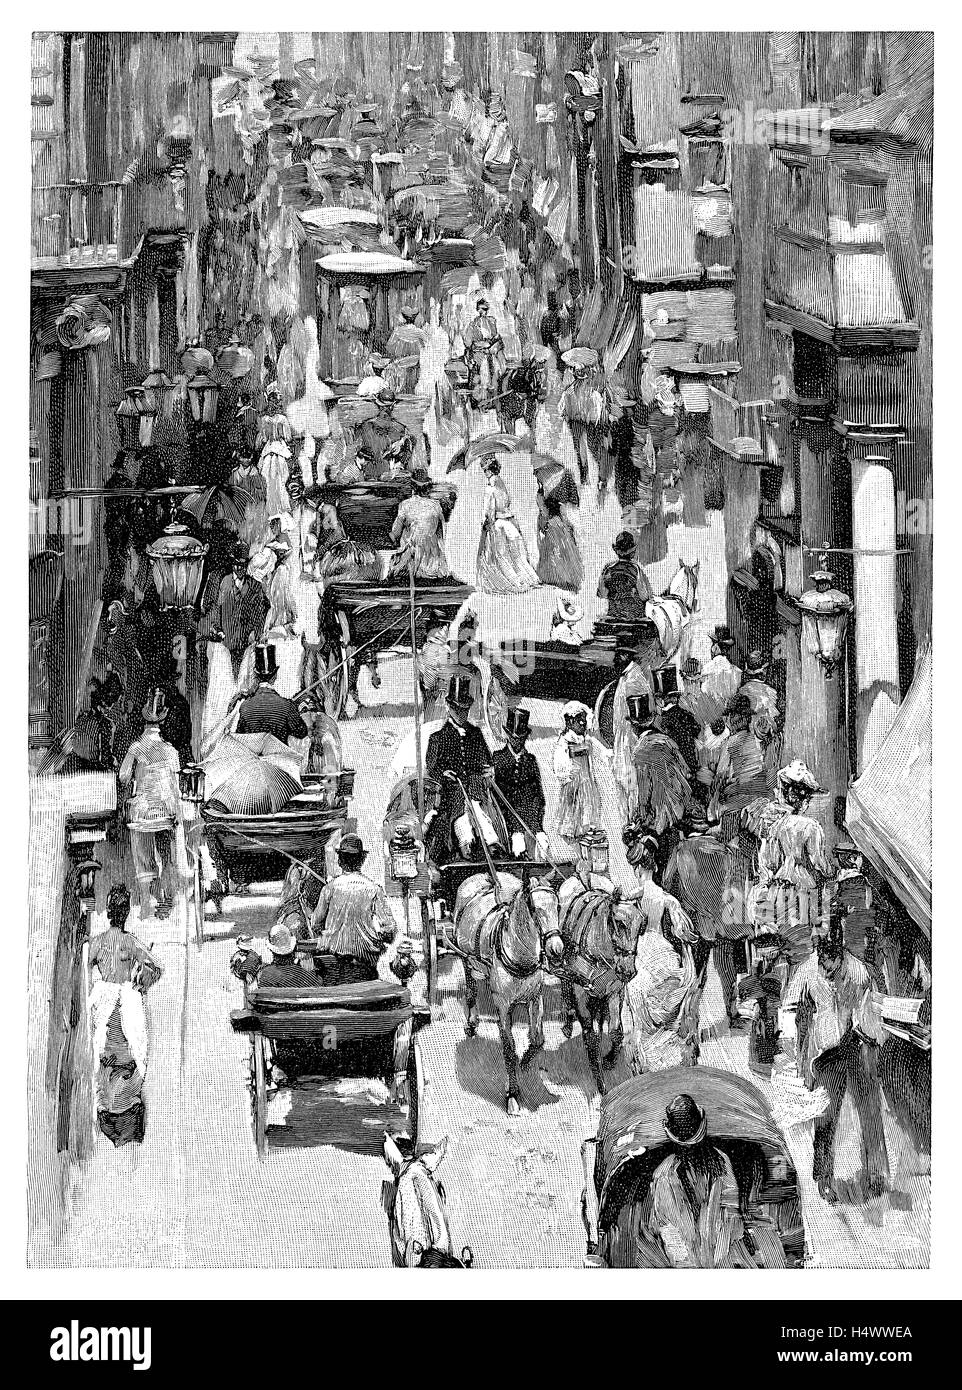 1891 black and white engraving of the Via Del Corso in Rome, Italy - Stock Image